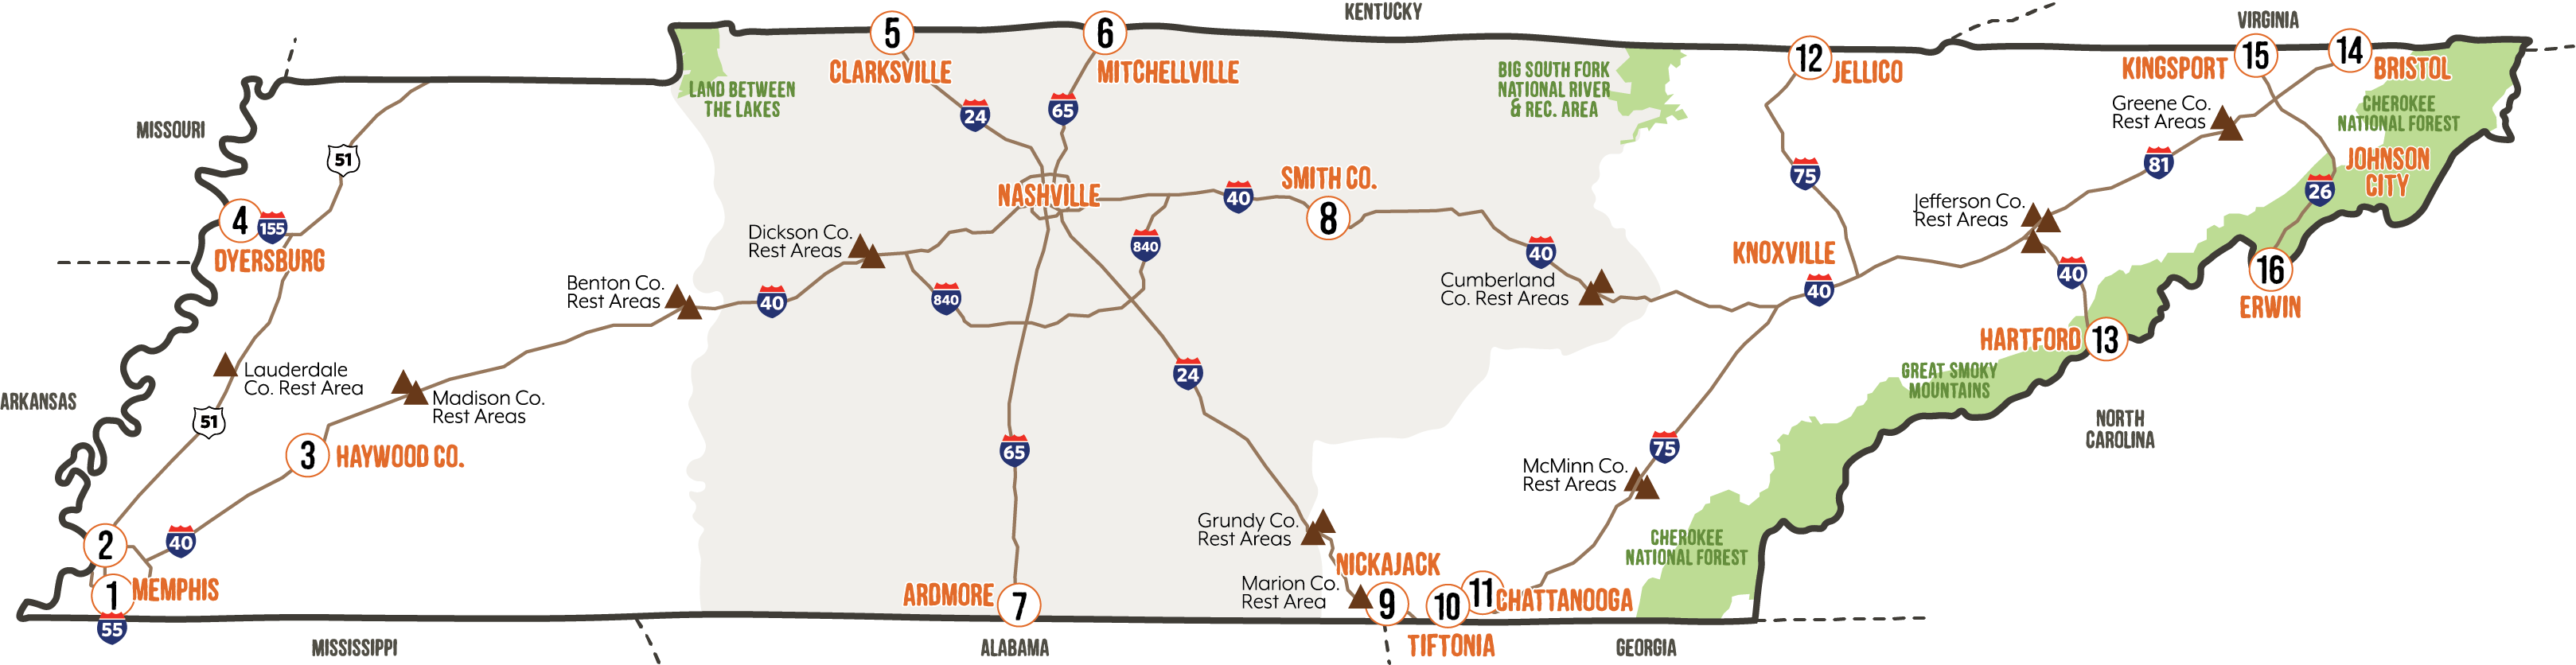 Tennessee Welcome Center Map